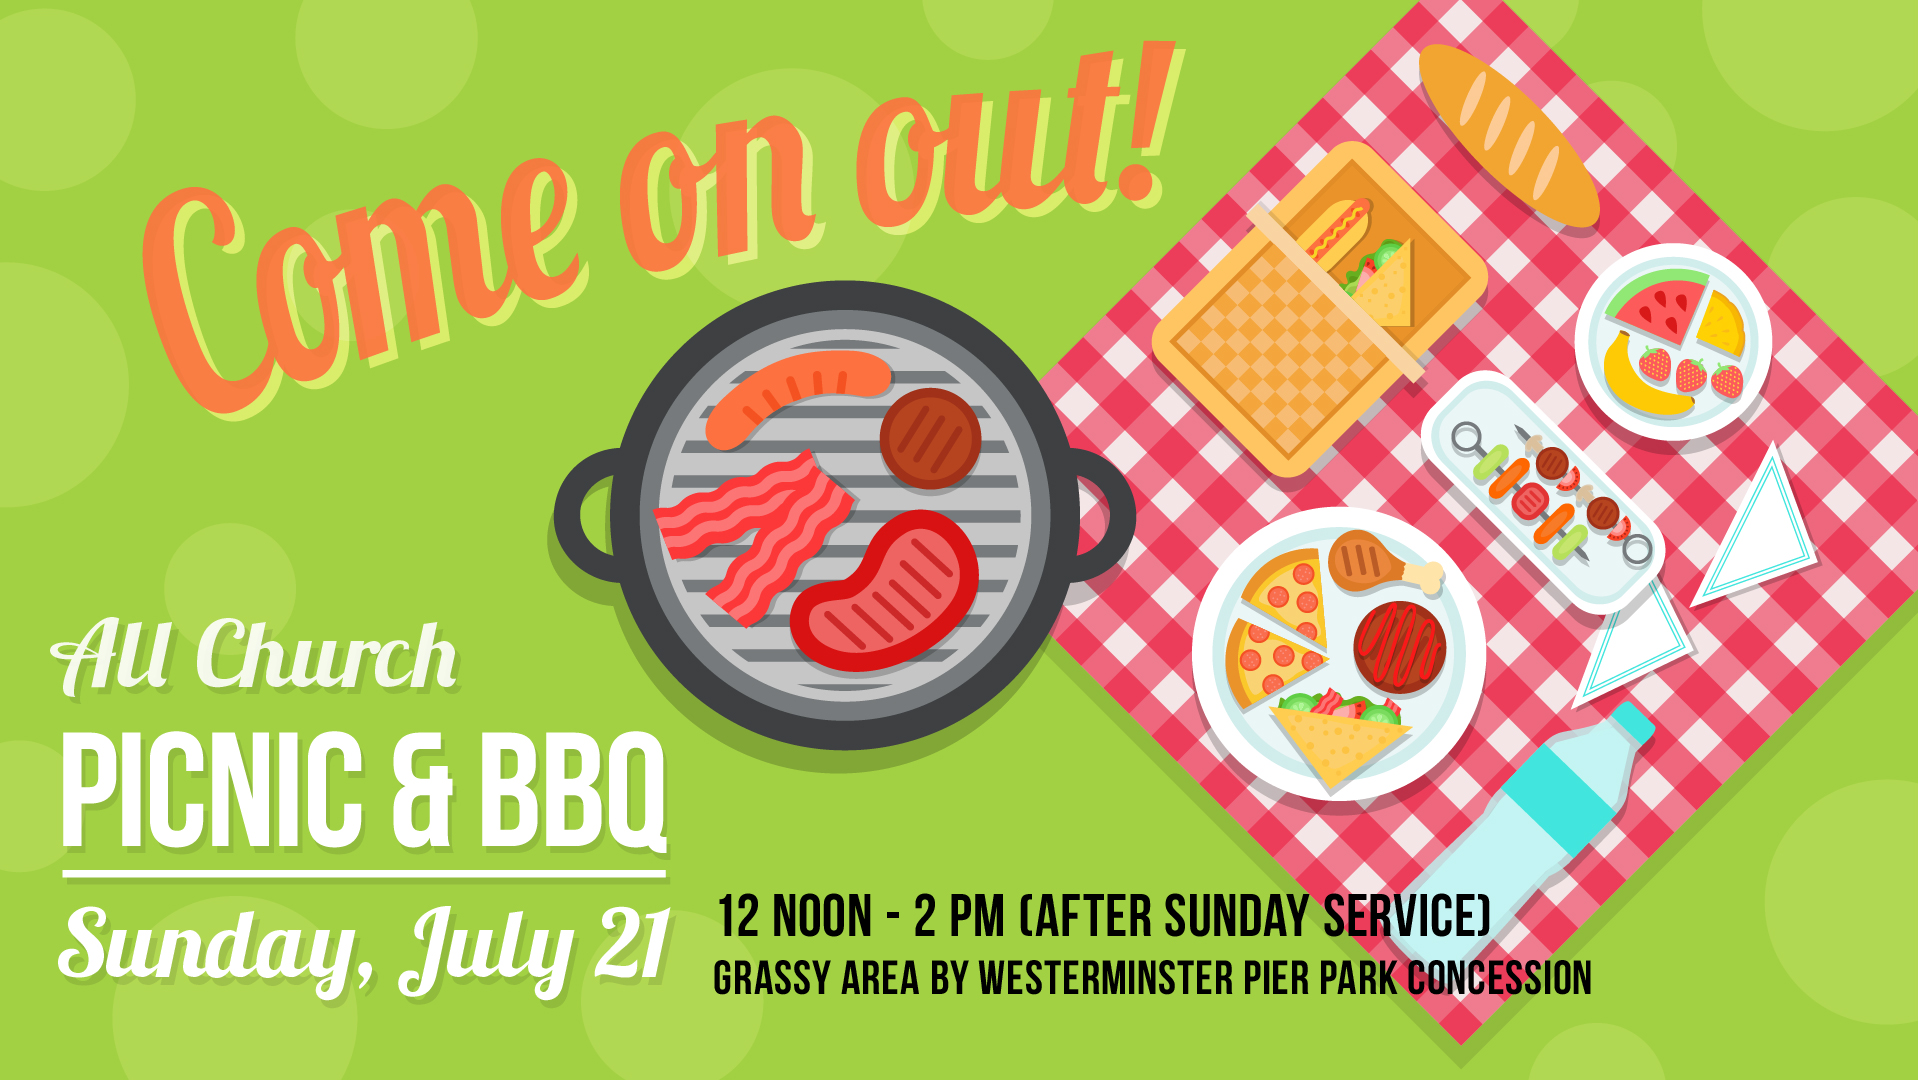 Come on out! All Church Picnic & BBQ